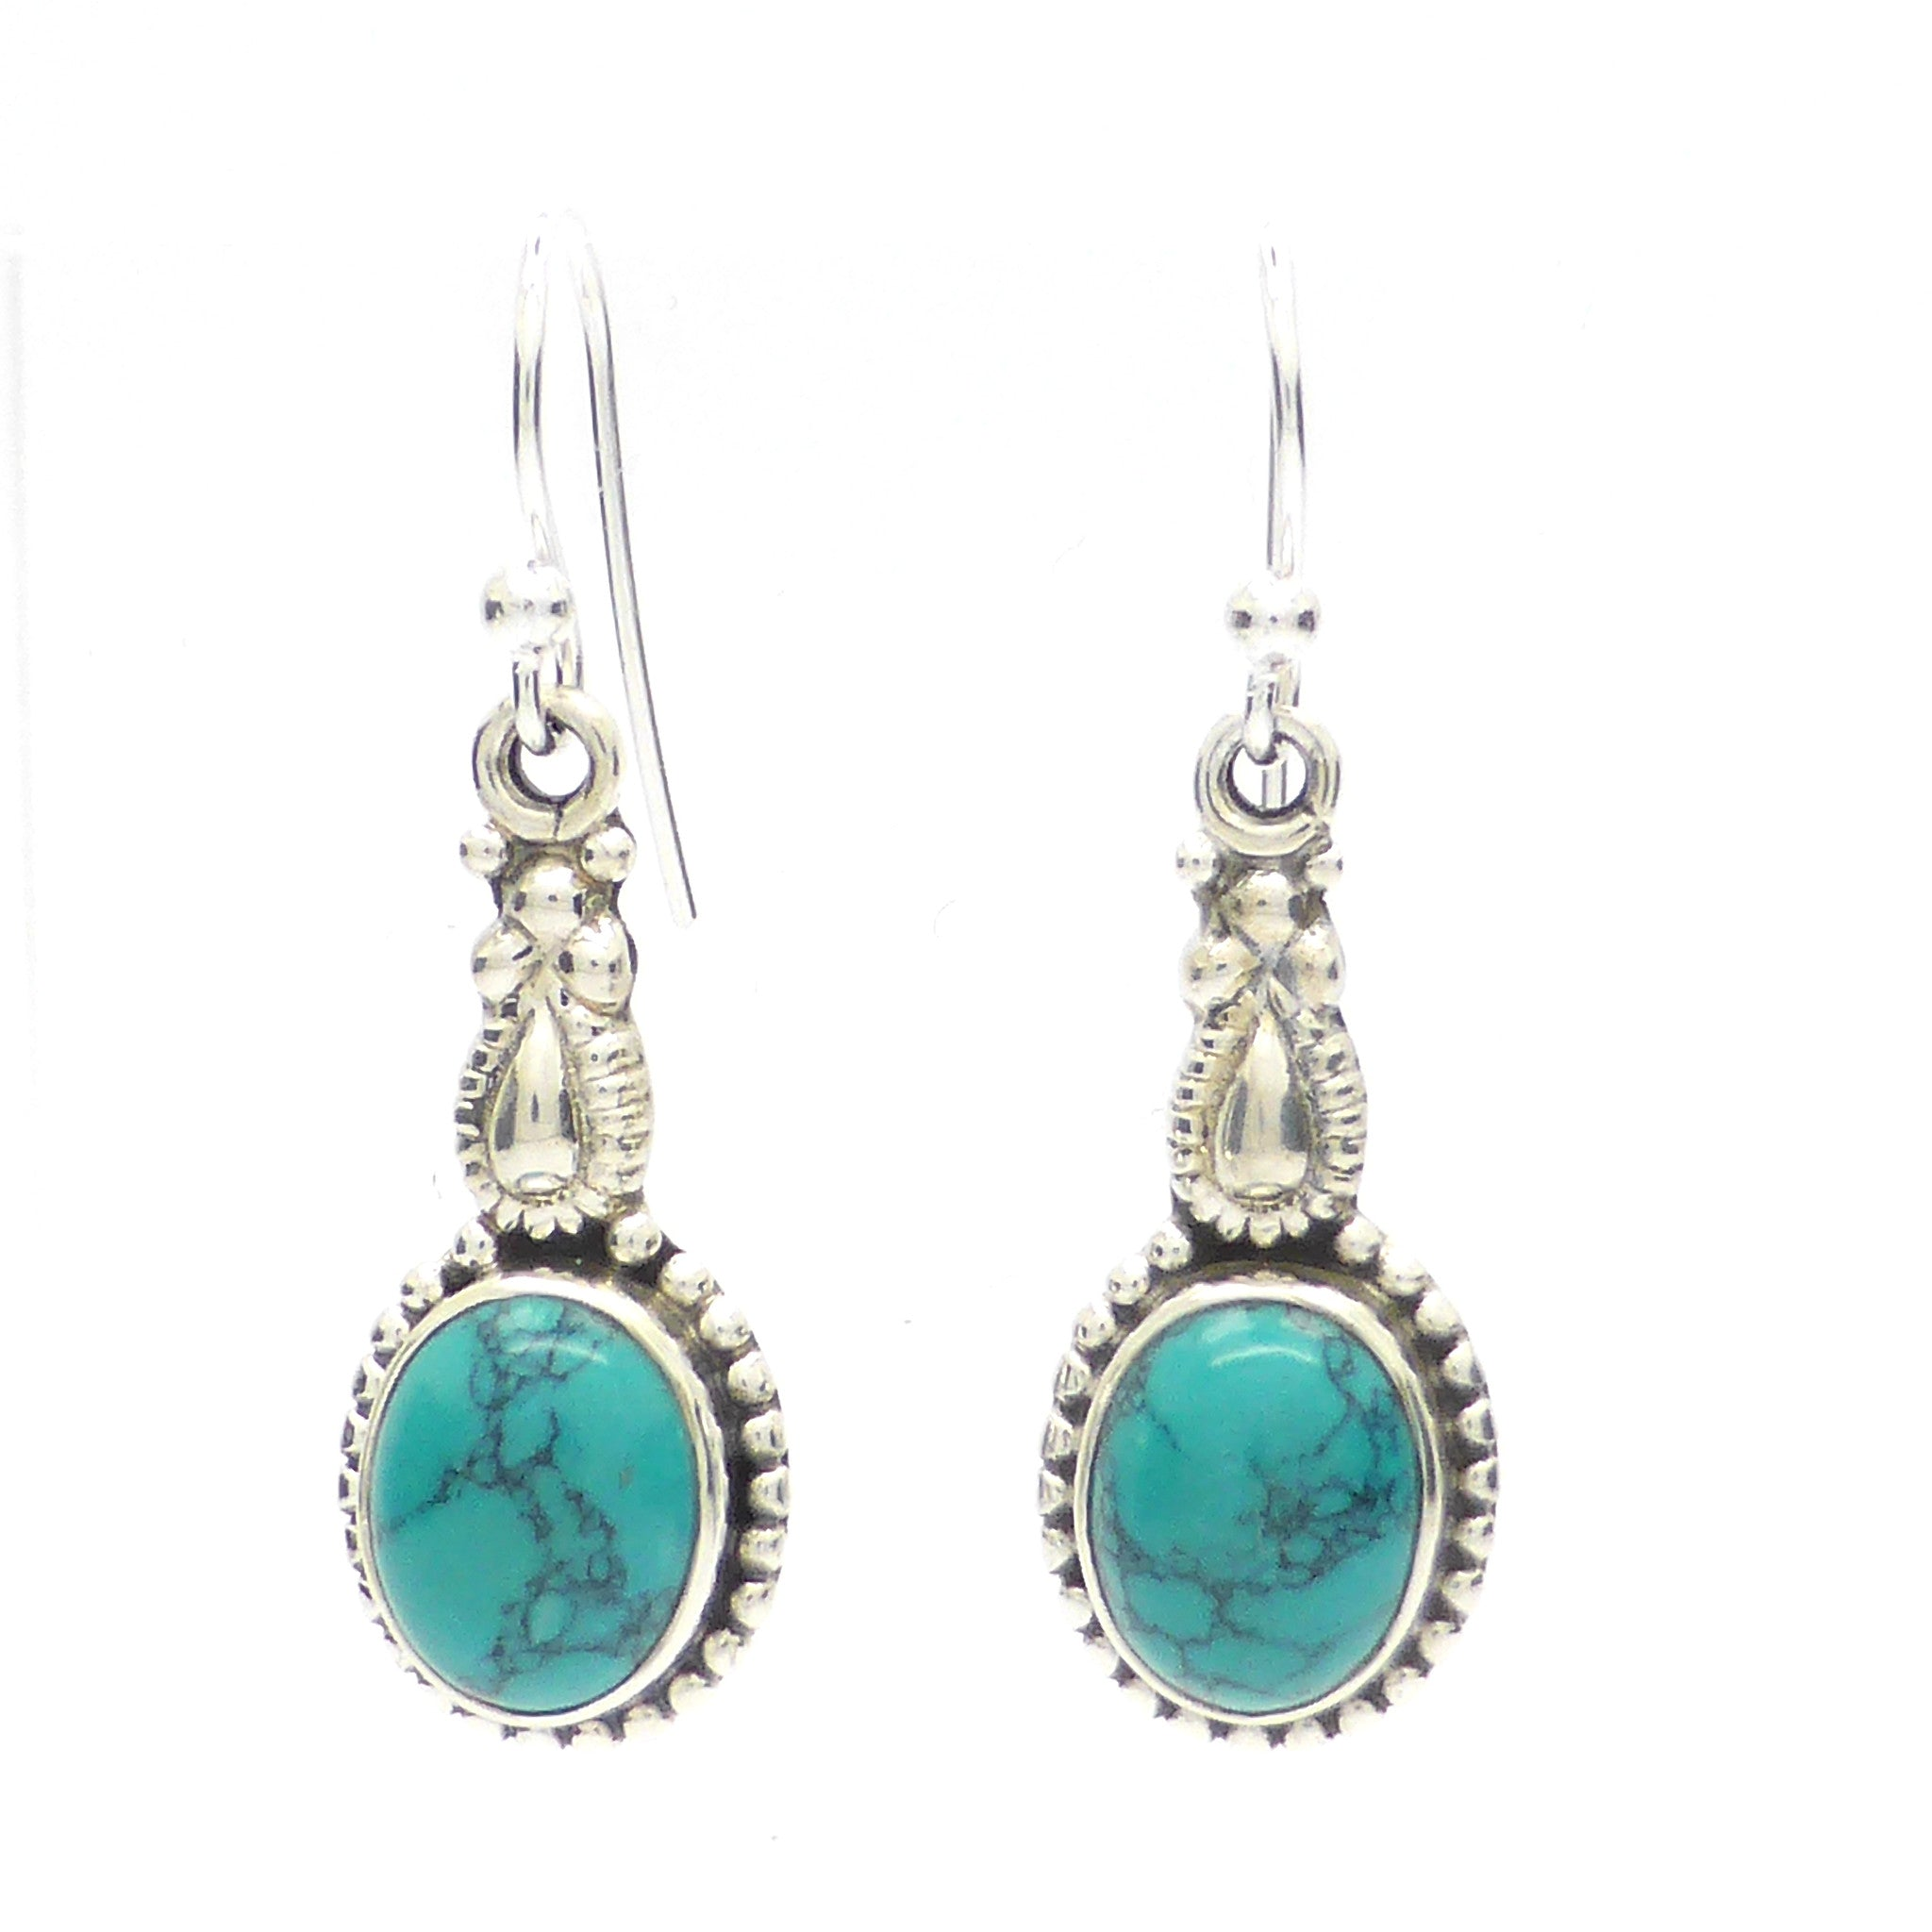 Turquoise Earrings | reconstituted gemstone | Oval Cabochon | 925 Sterling Silver | Ethnic Detail | Crystal Heart Melbourne Australia since 1986